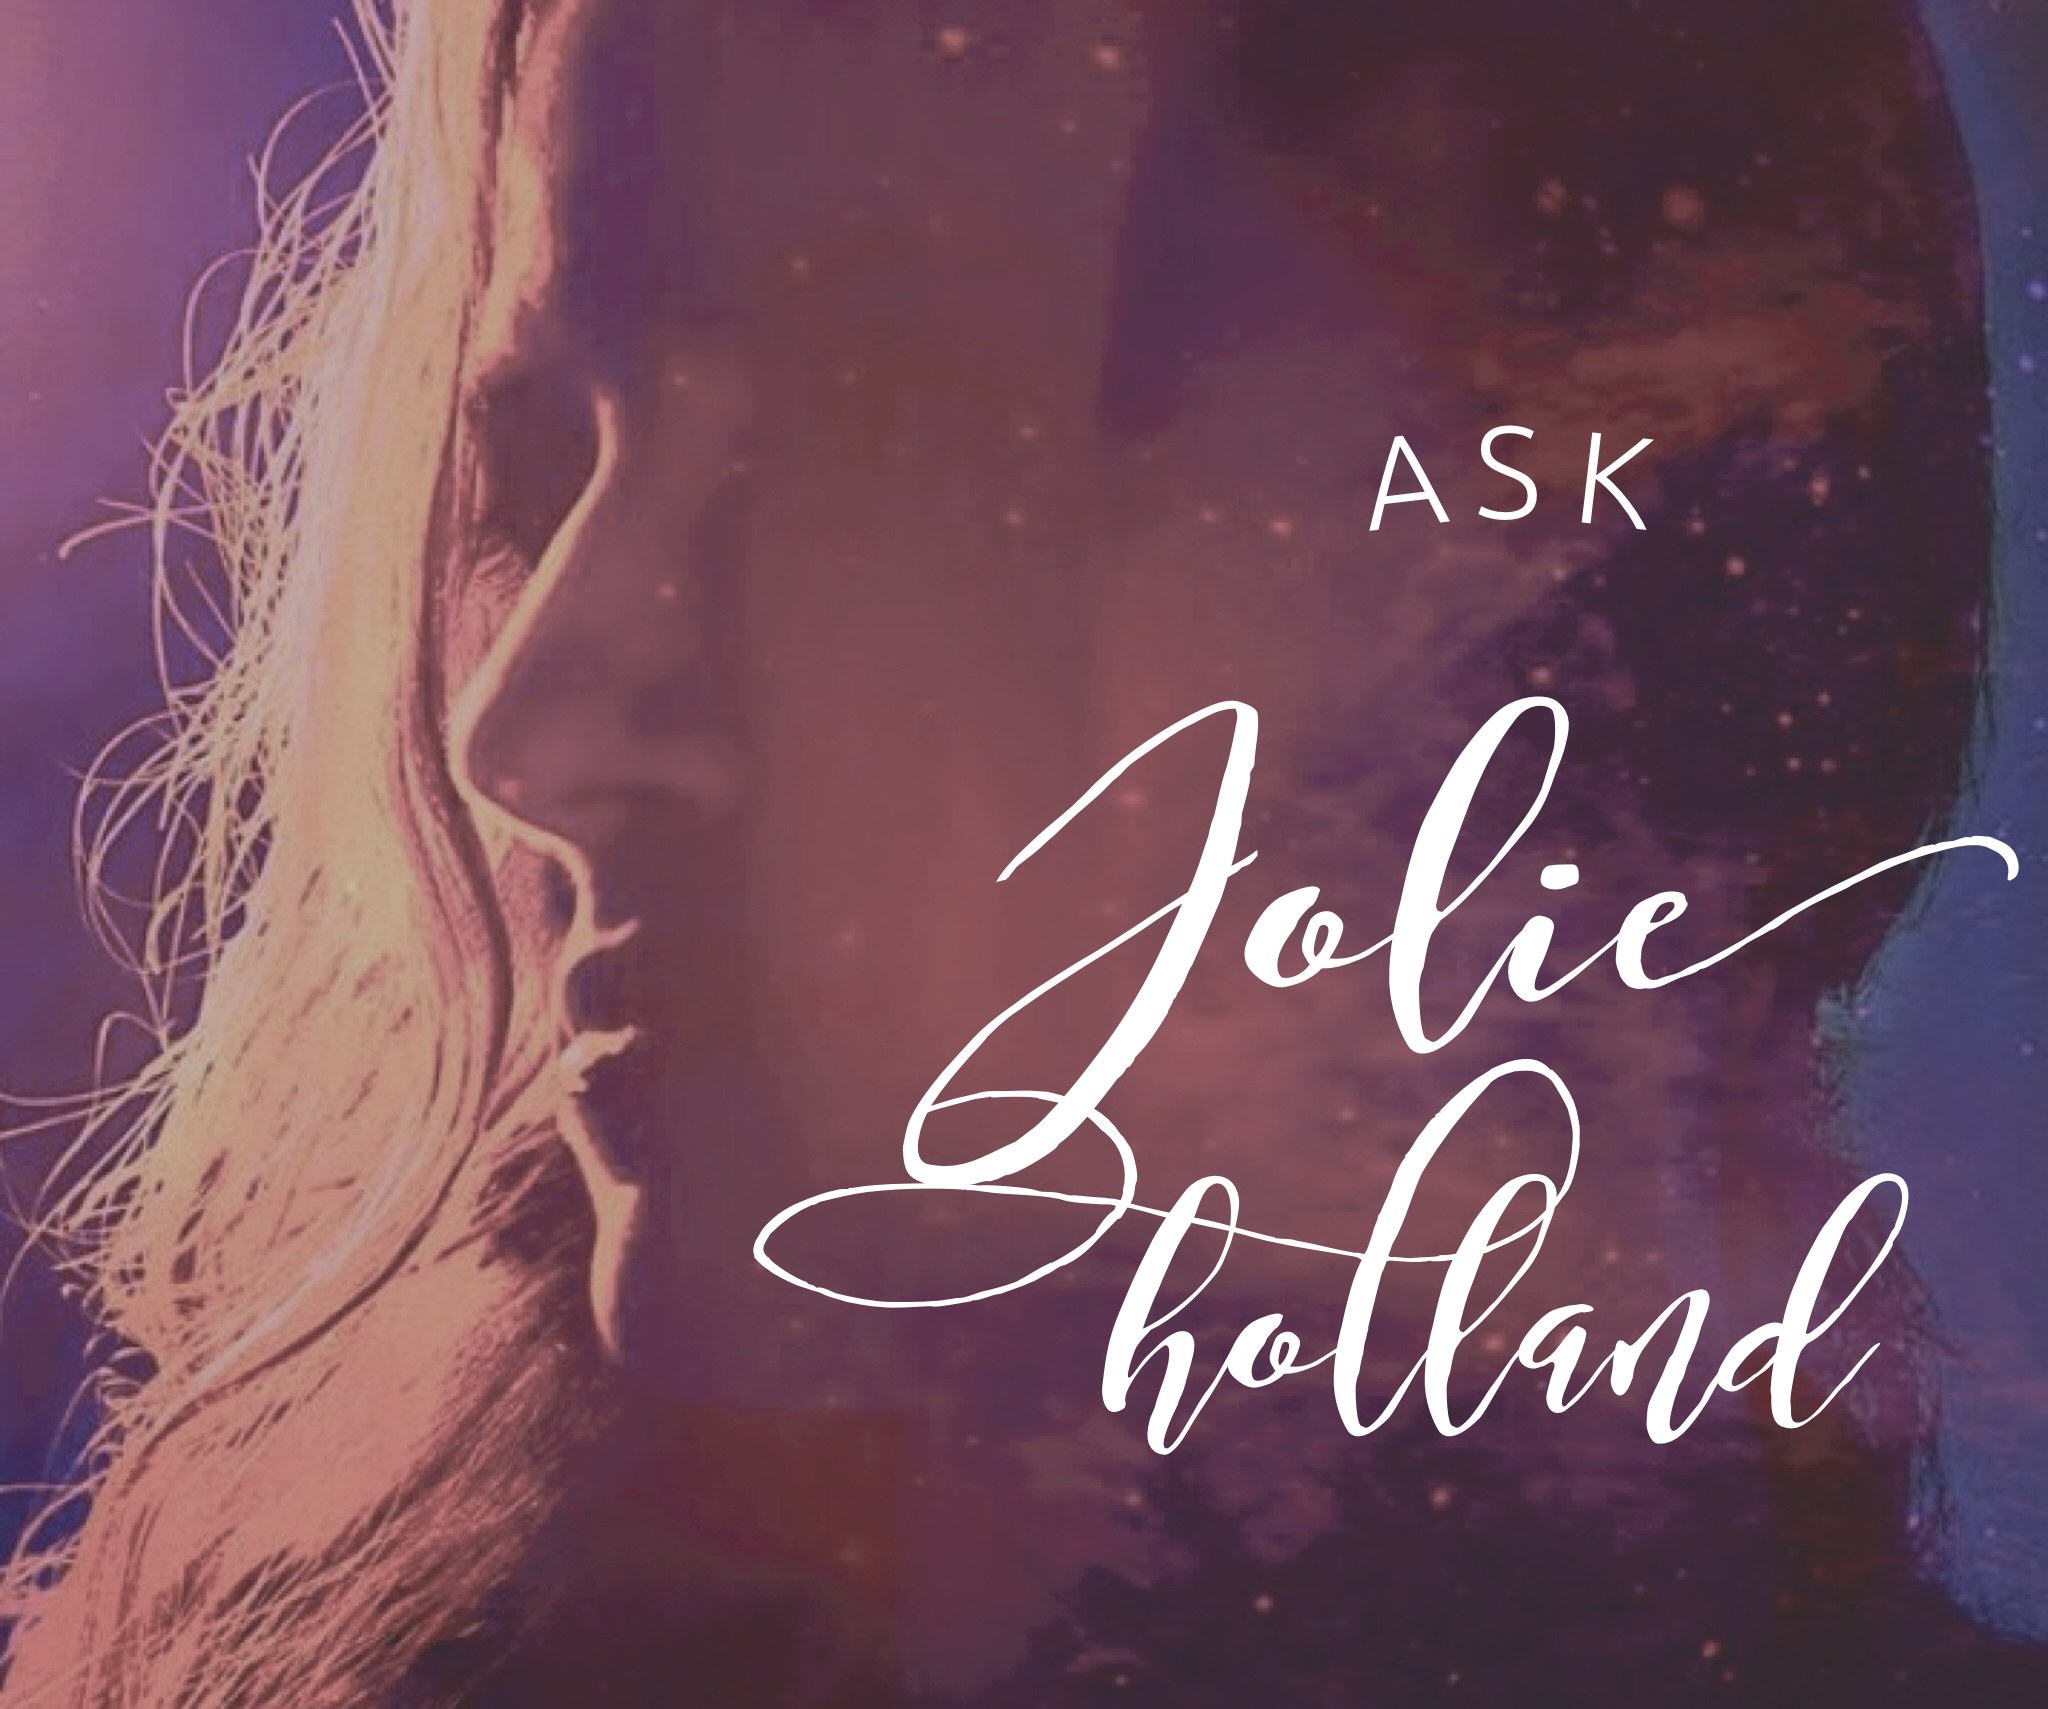 Ask Jolie Holland: Finding Your Space